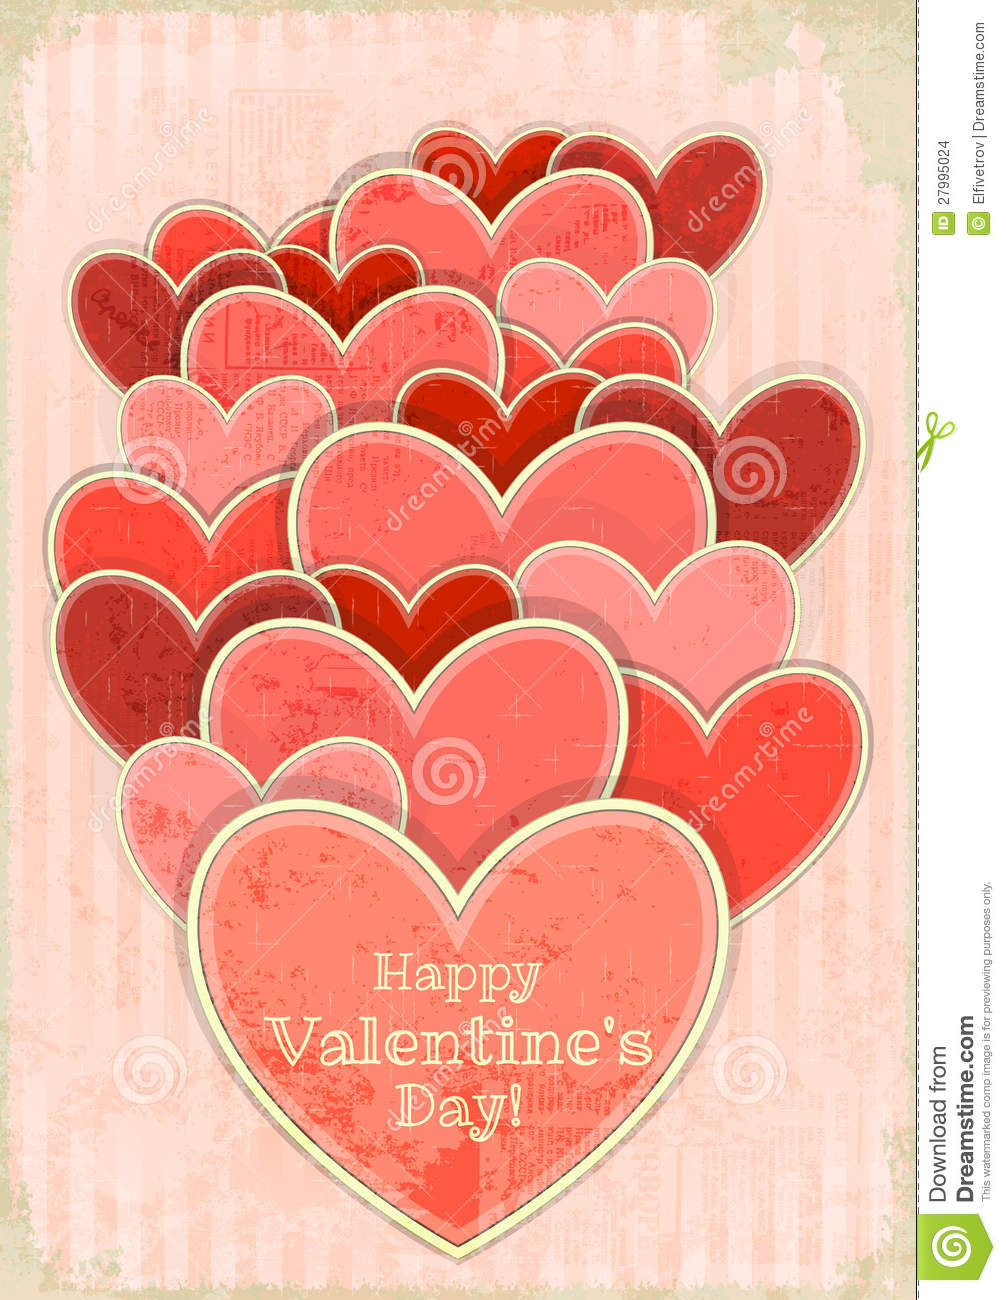 Valentine S Day Vintage Toys : Retro valentines day card with hearts stock vector